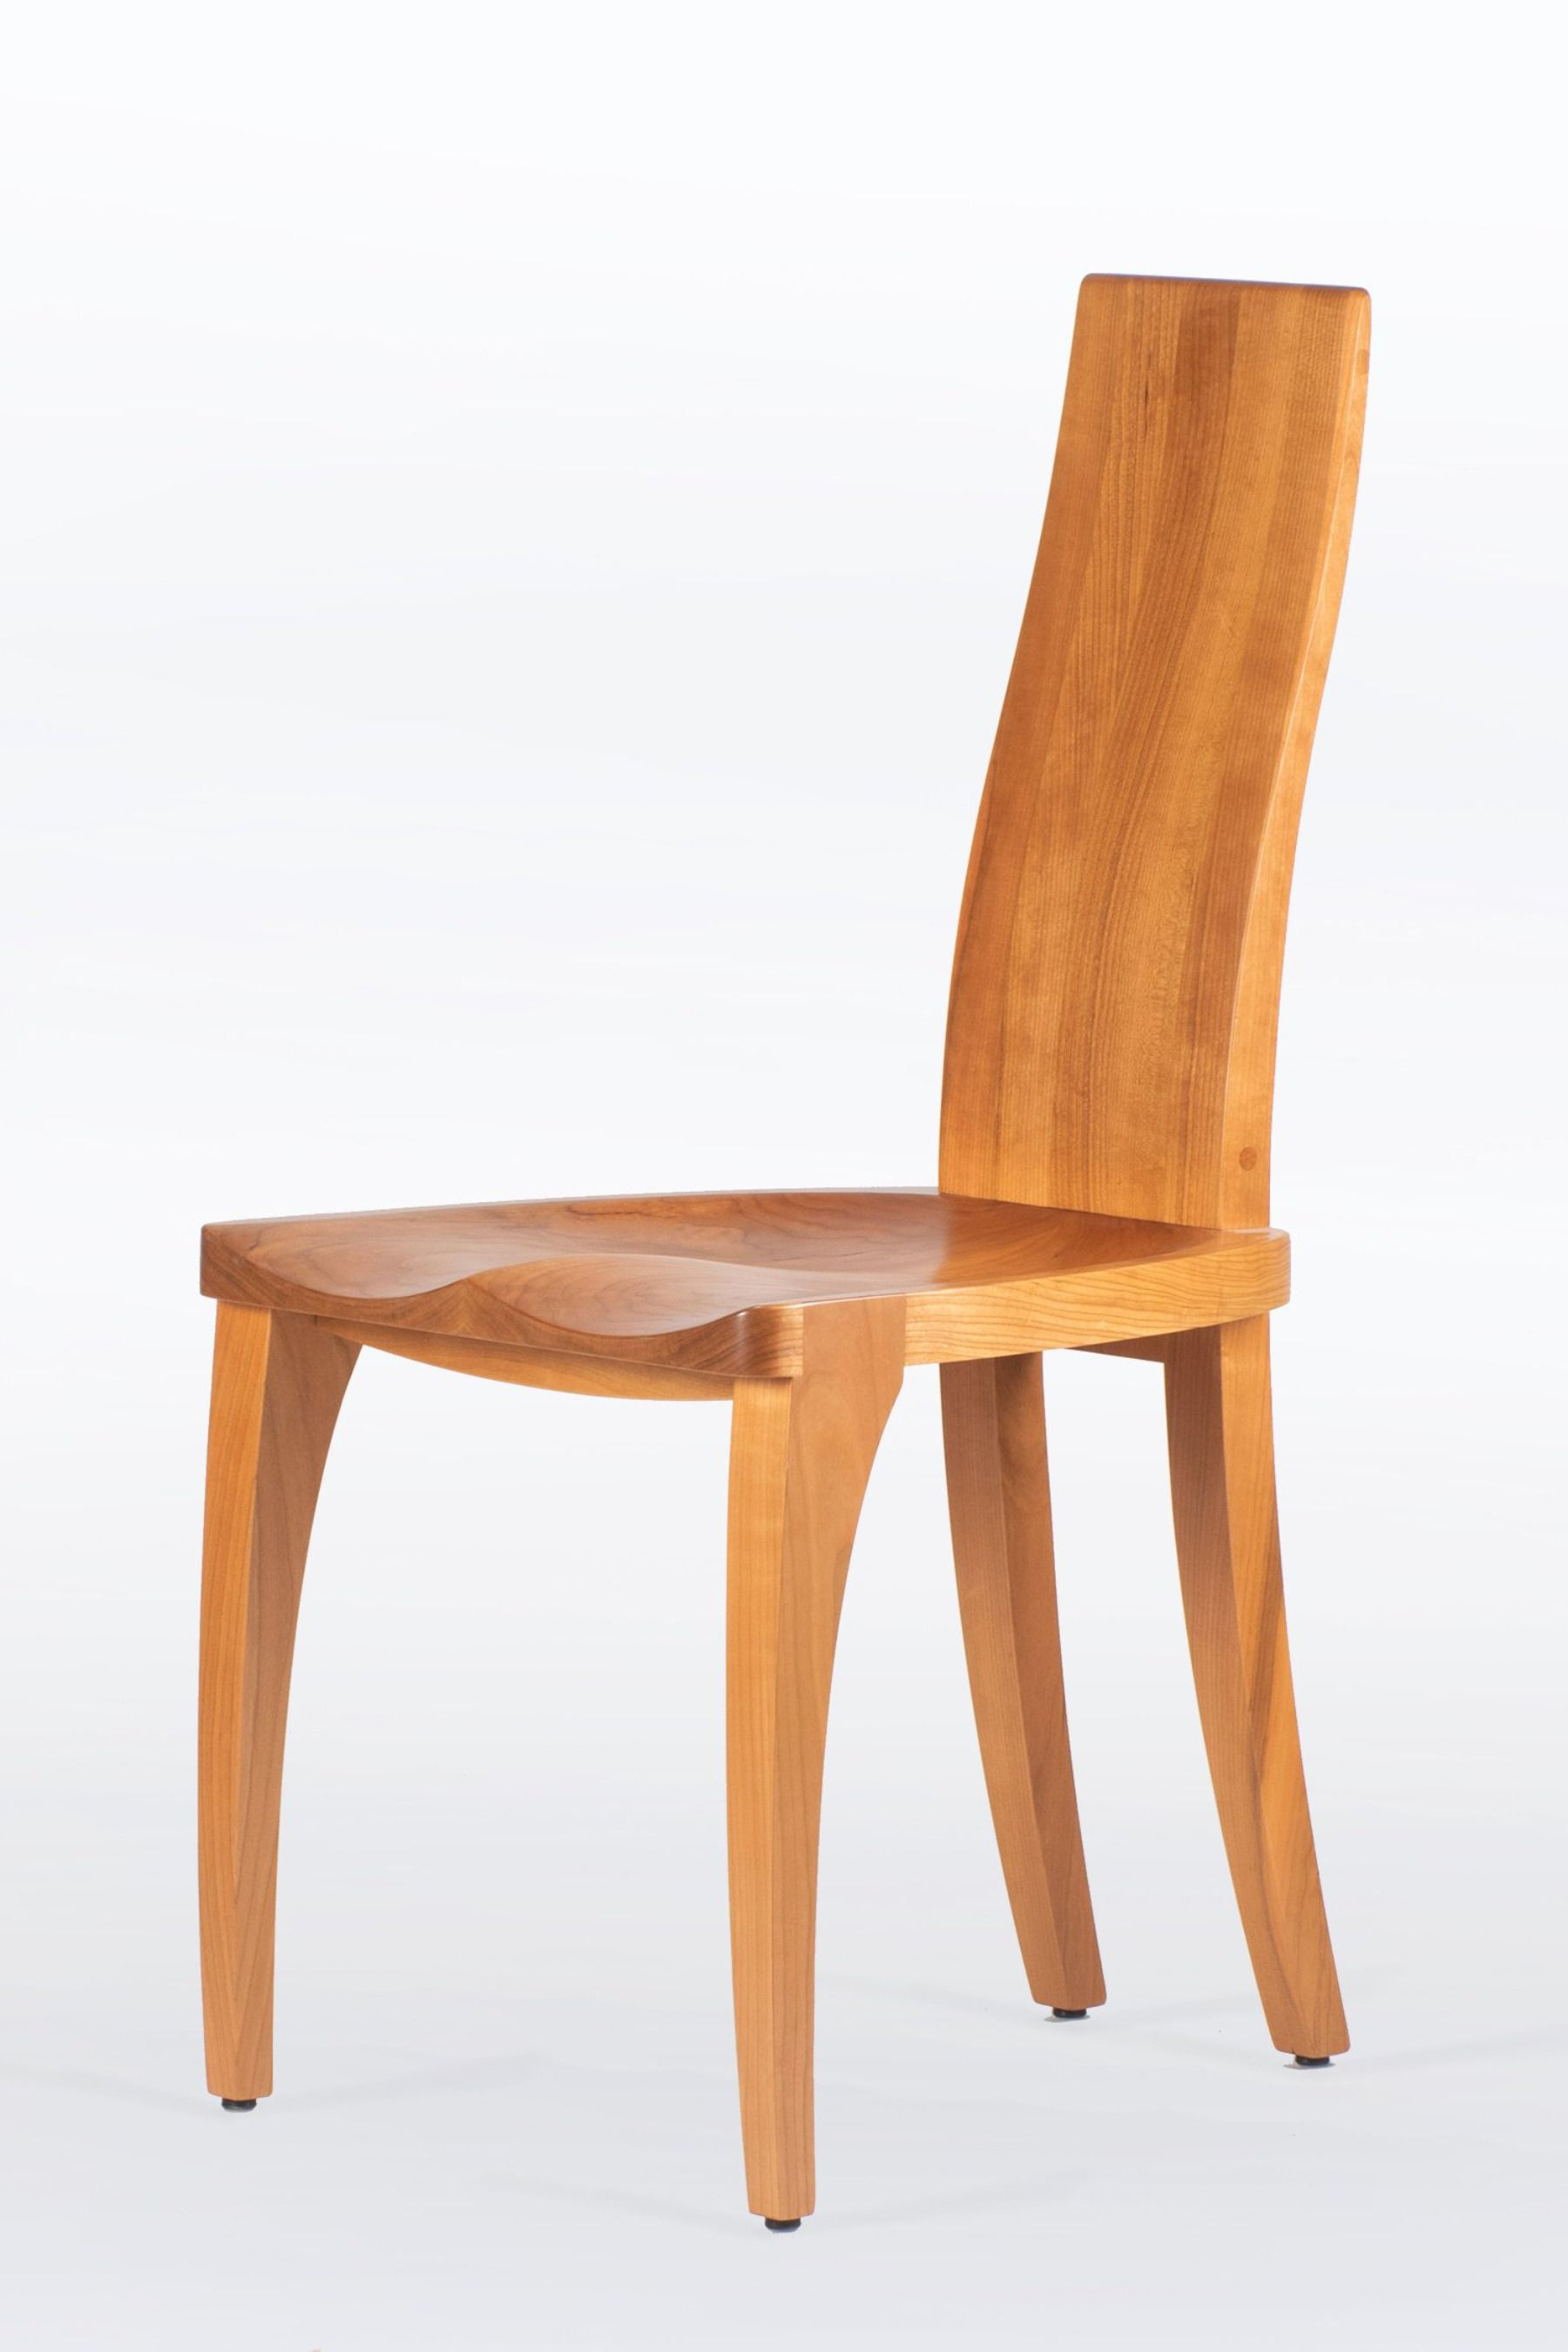 Dining Chair In Solid Cherry Wood With Scandinavian Modern Style